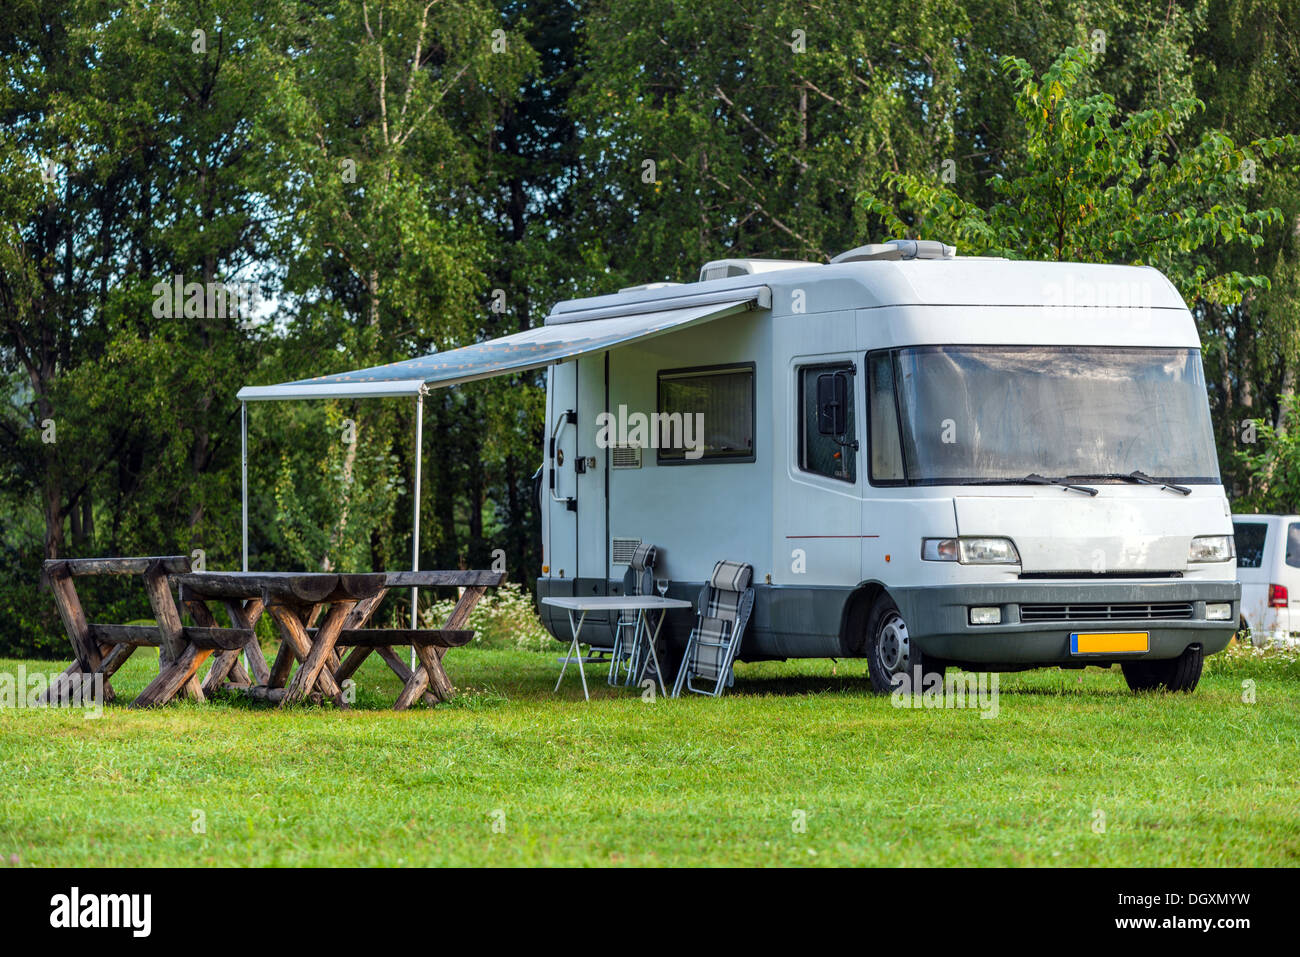 Mobile Home Camping Vehicle Trailer Car Tent Summer Holiday